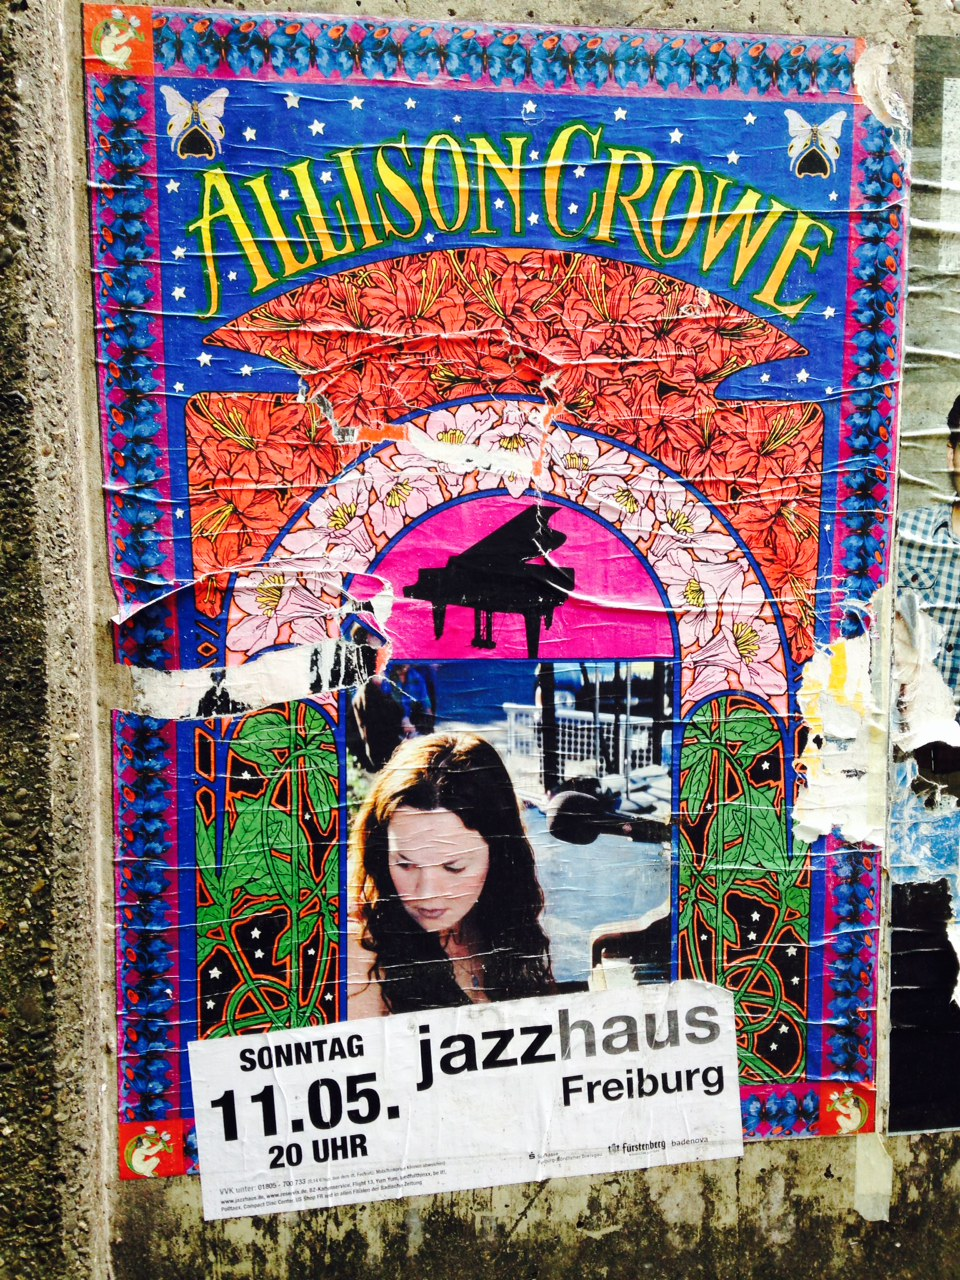 Allison Crowe - Jazzhaus Freiburg - Bob Masse rock poster art